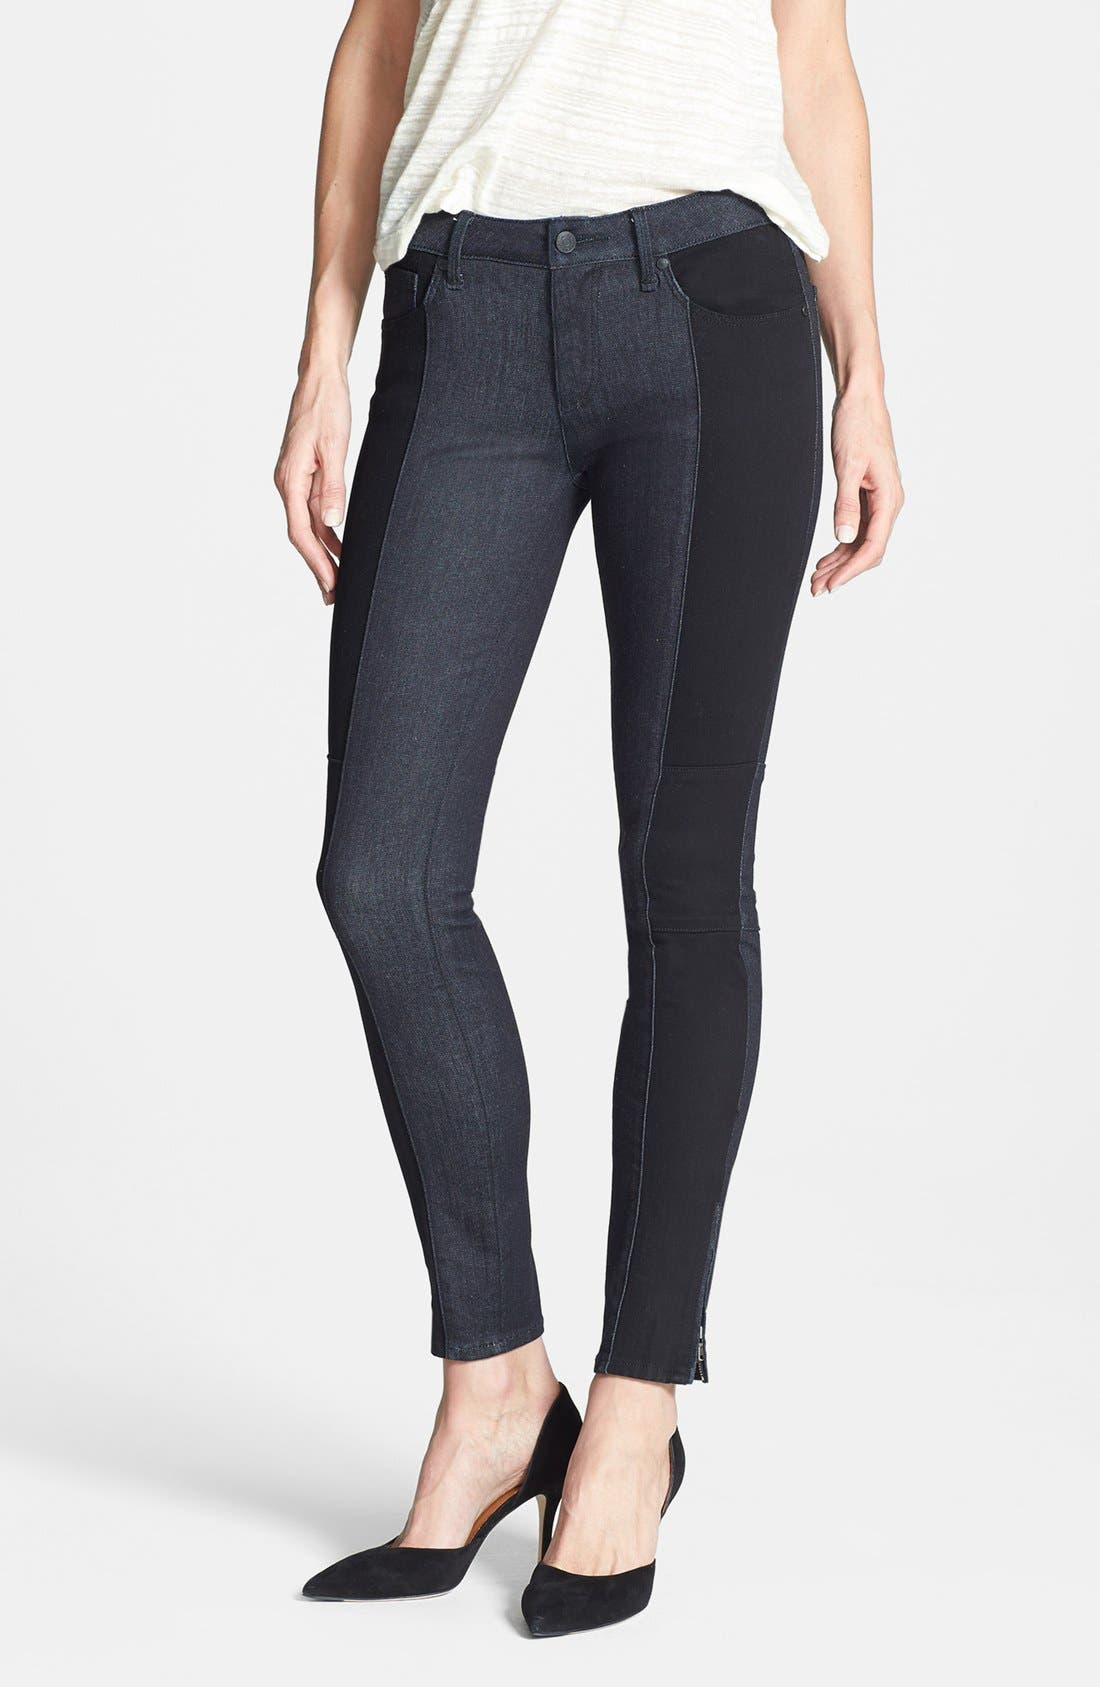 Alternate Image 1 Selected - MARC BY MARC JACOBS Seamed Stretch Crop Cigarette Leg Jeans